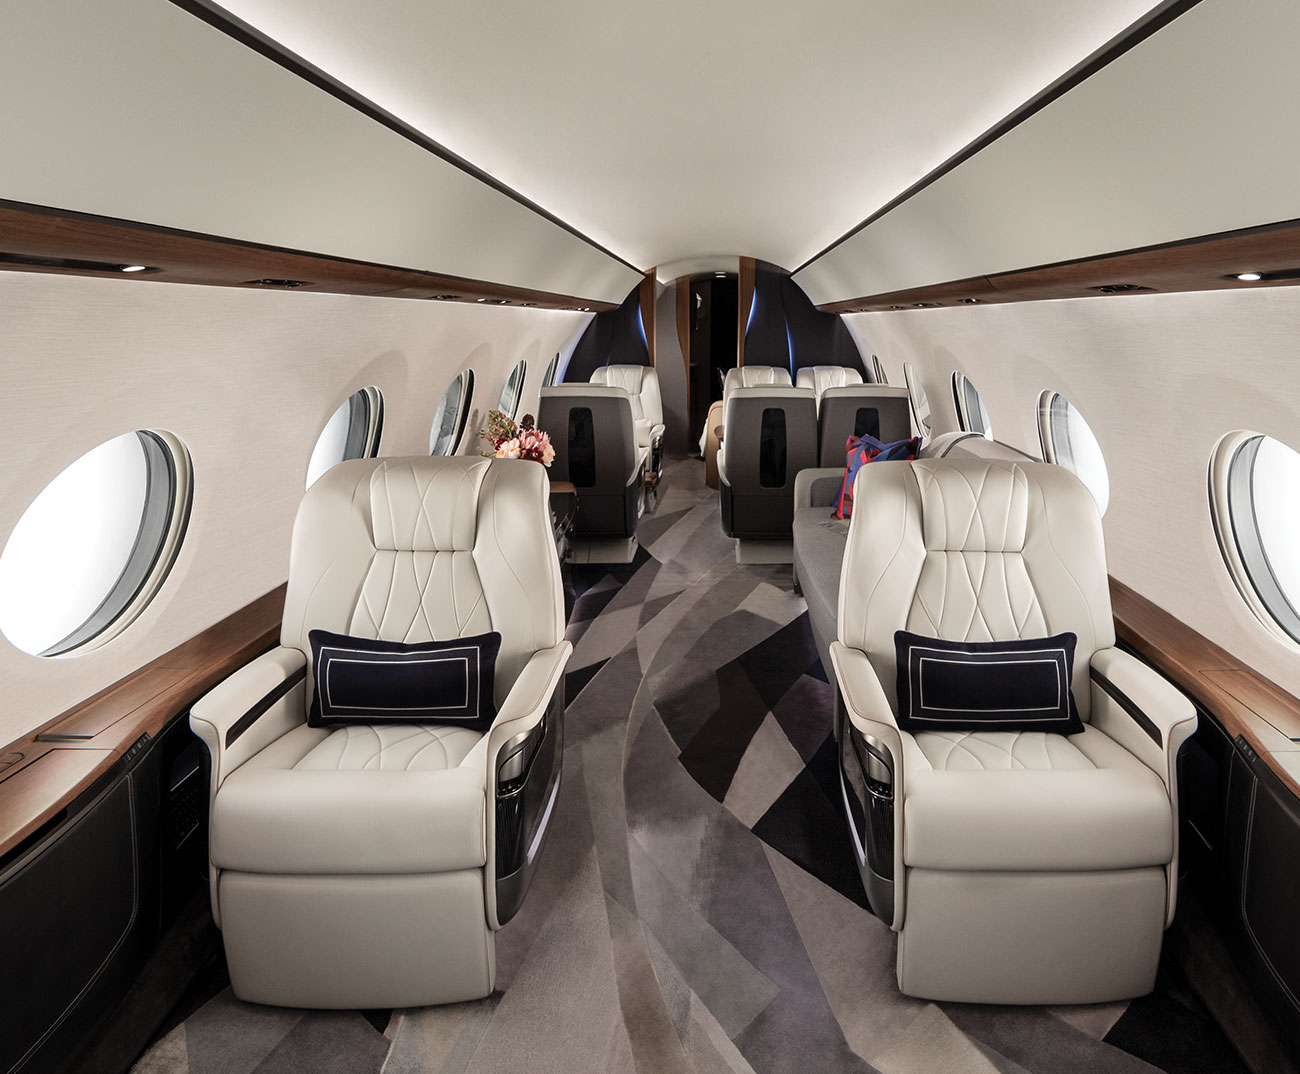 Two white leather chairs in luxury aircraft aisle